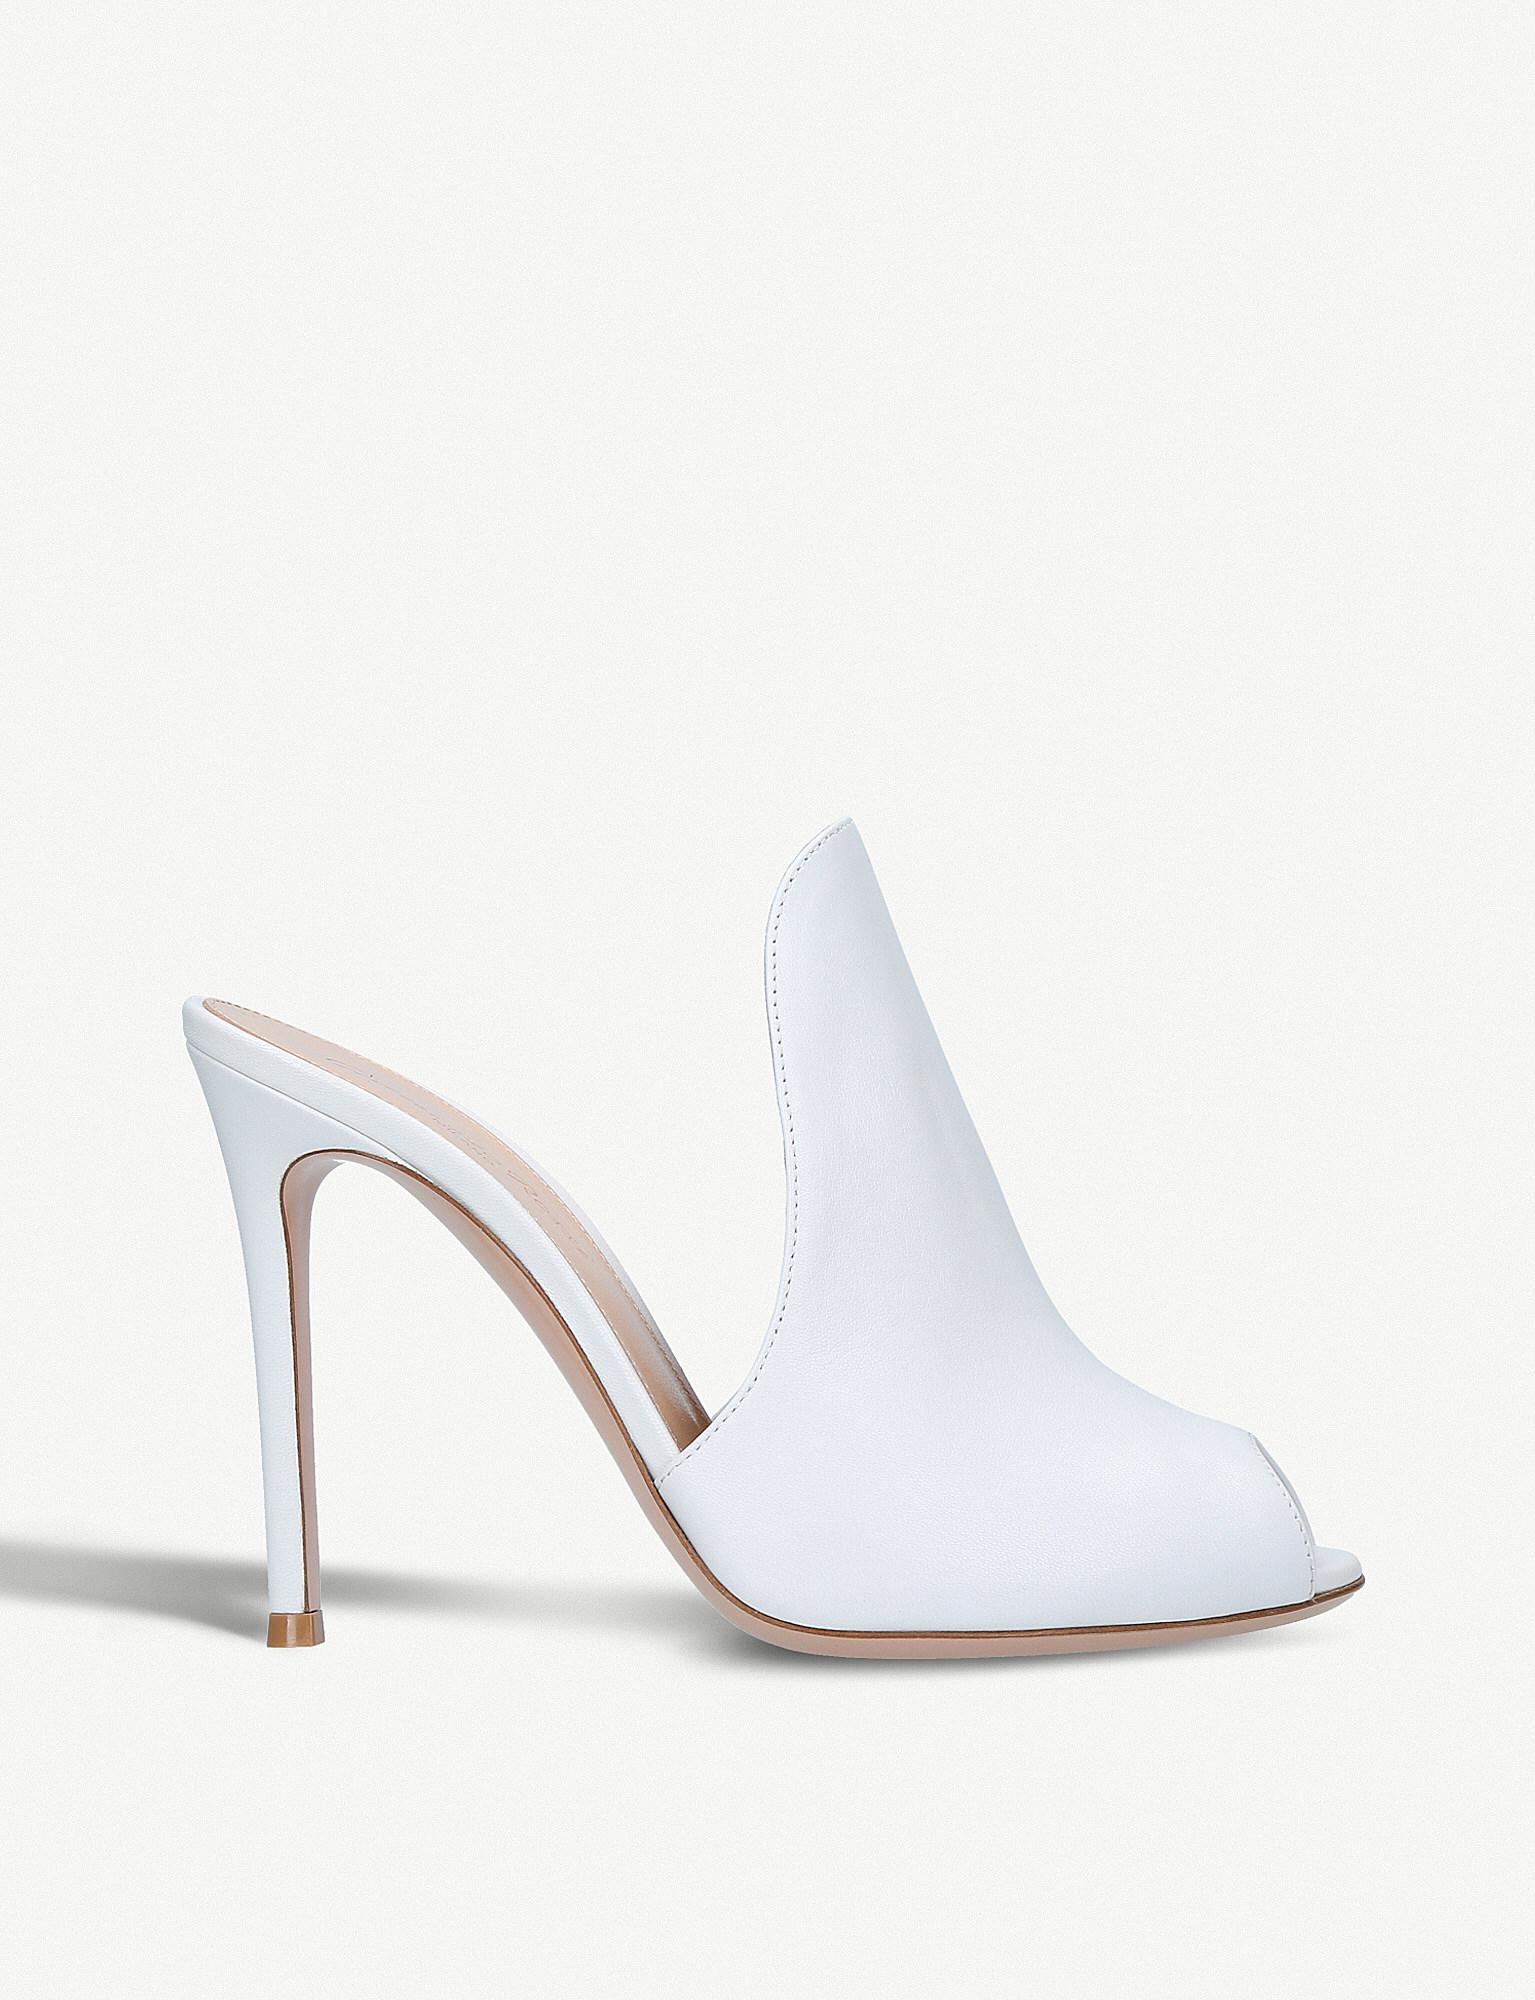 Aramis 105 White Patent Leather Mules Gianvito Rossi Cheap Sale Good Selling NepRJPZ